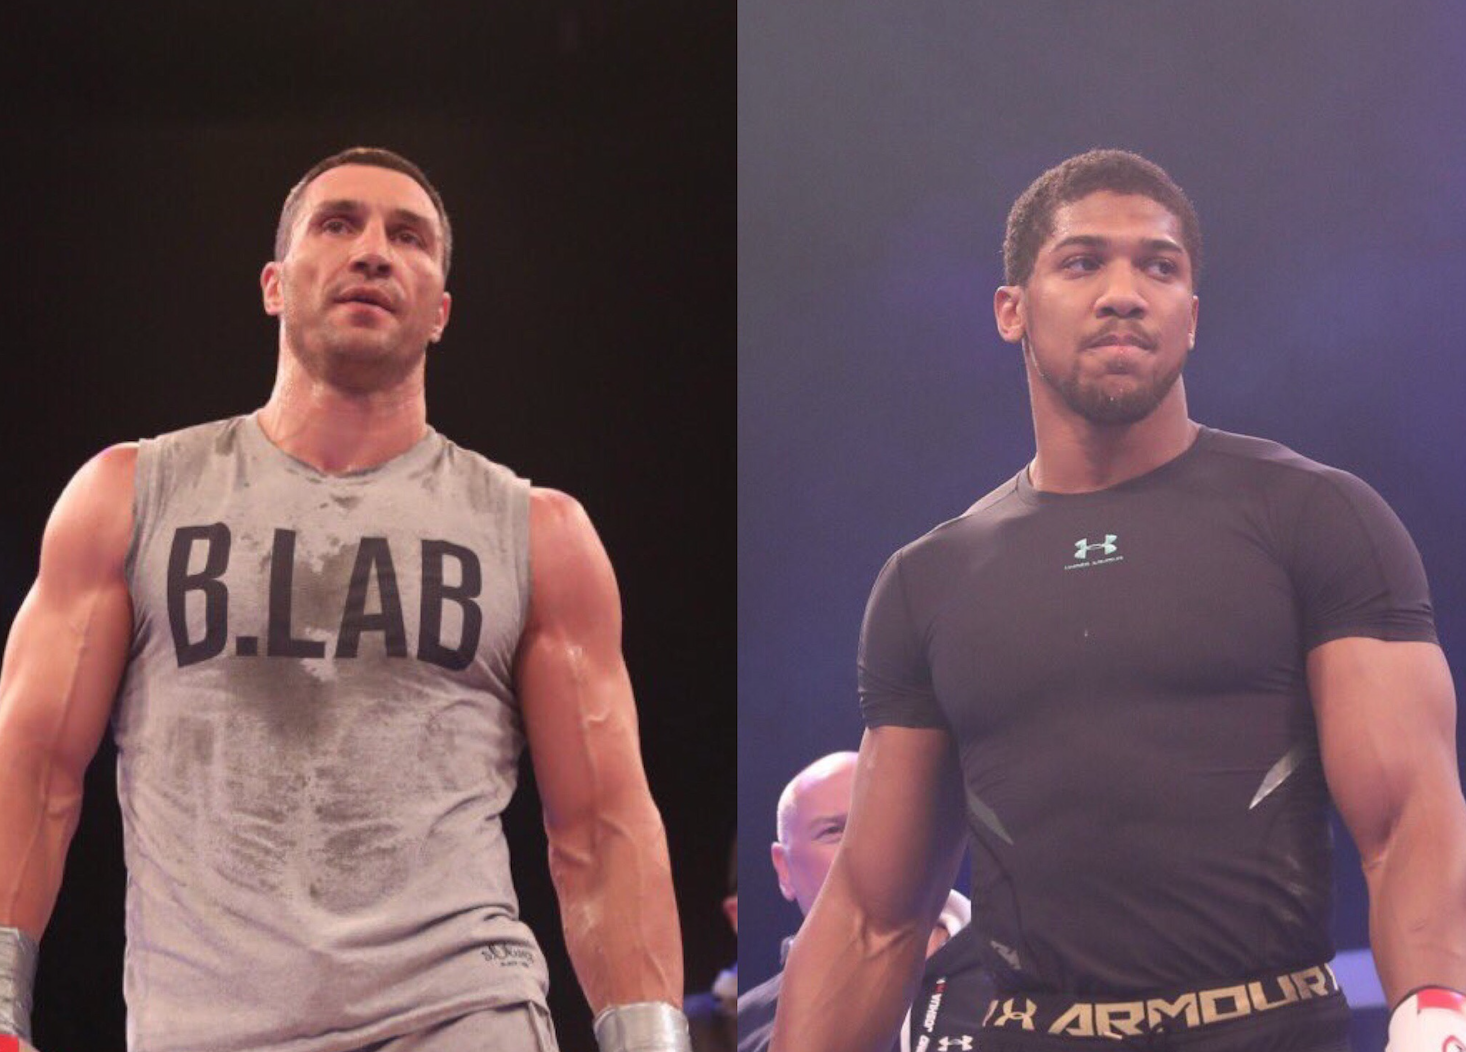 Joshua and Klitschko completed public workout at Wembley